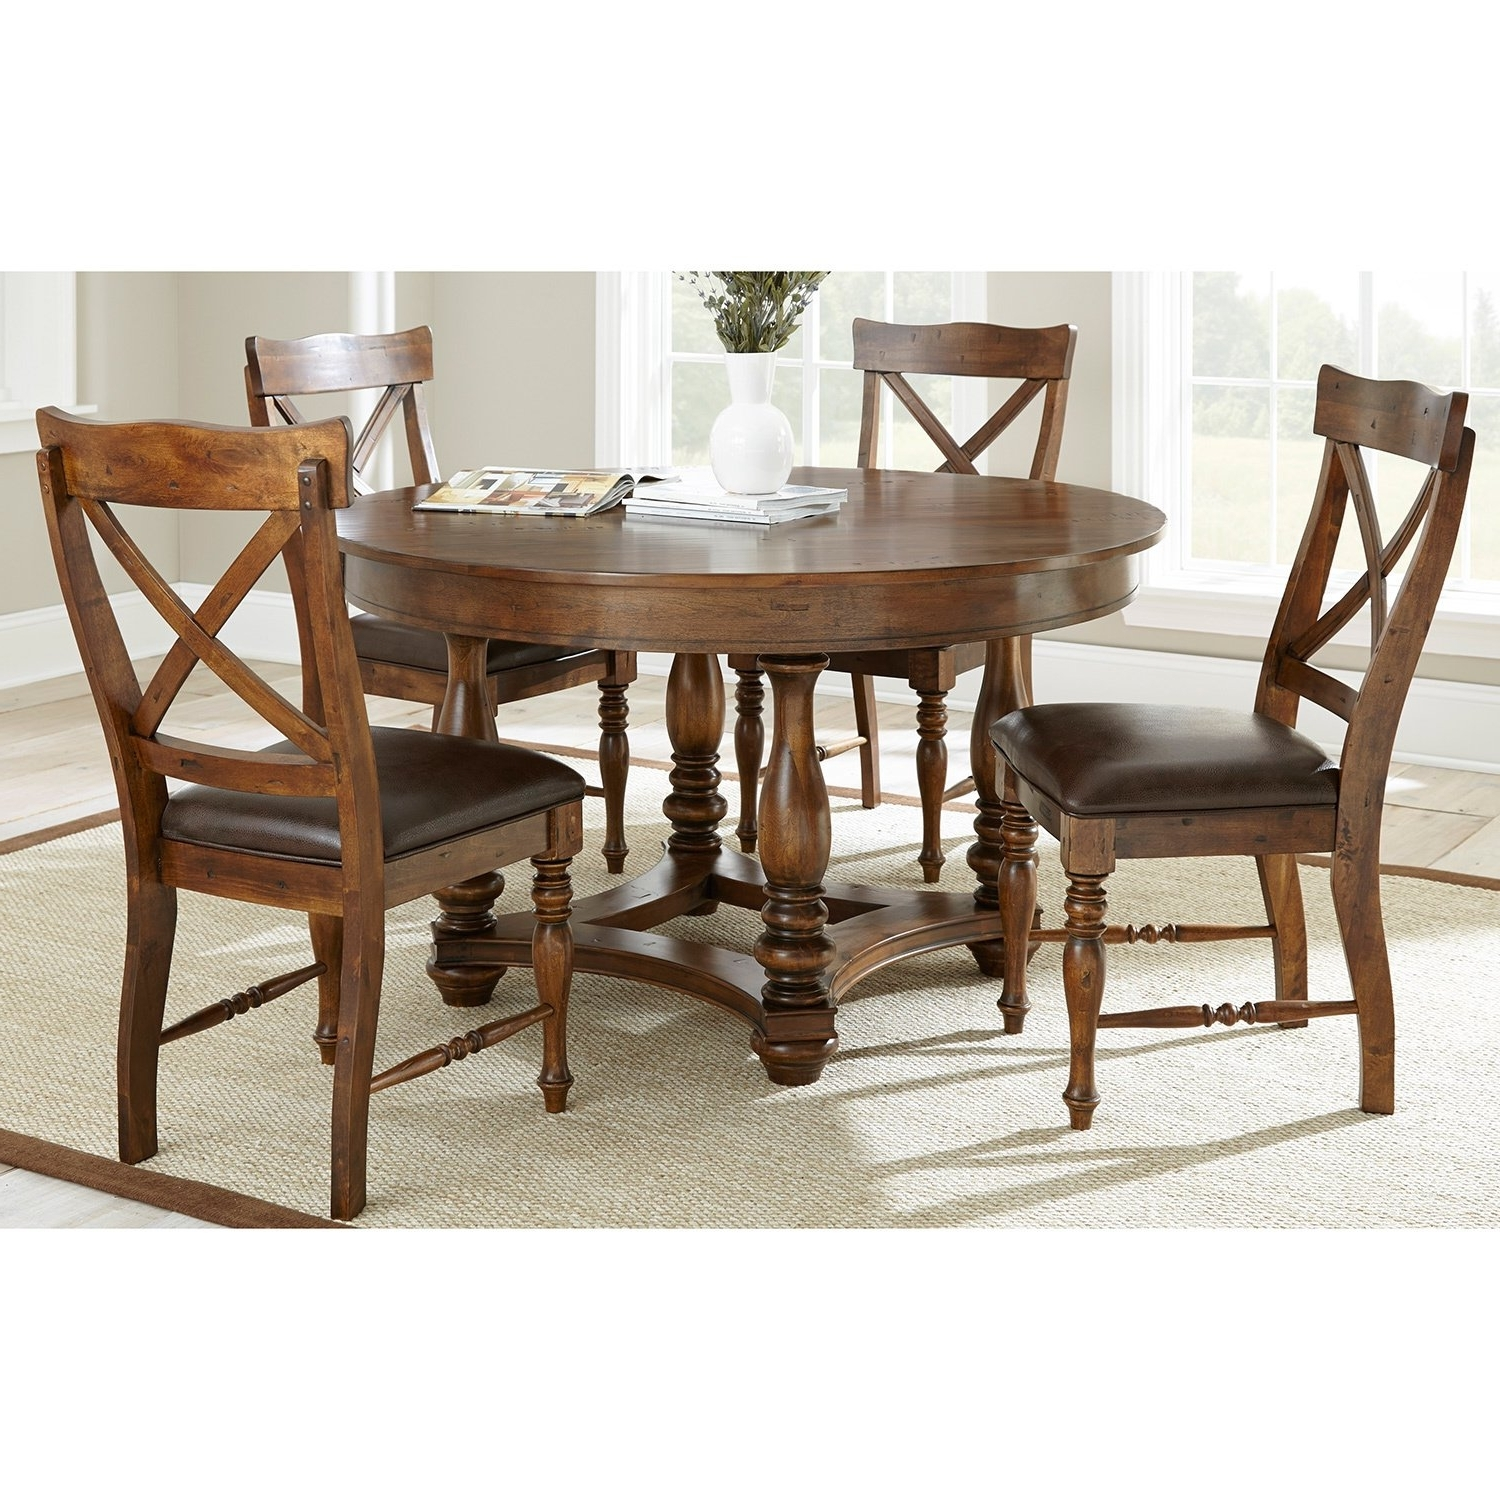 Most Popular Shop Wyatt Old World 5 Piece Dining Setgreyson Living – Free Intended For Wyatt Dining Tables (View 13 of 25)